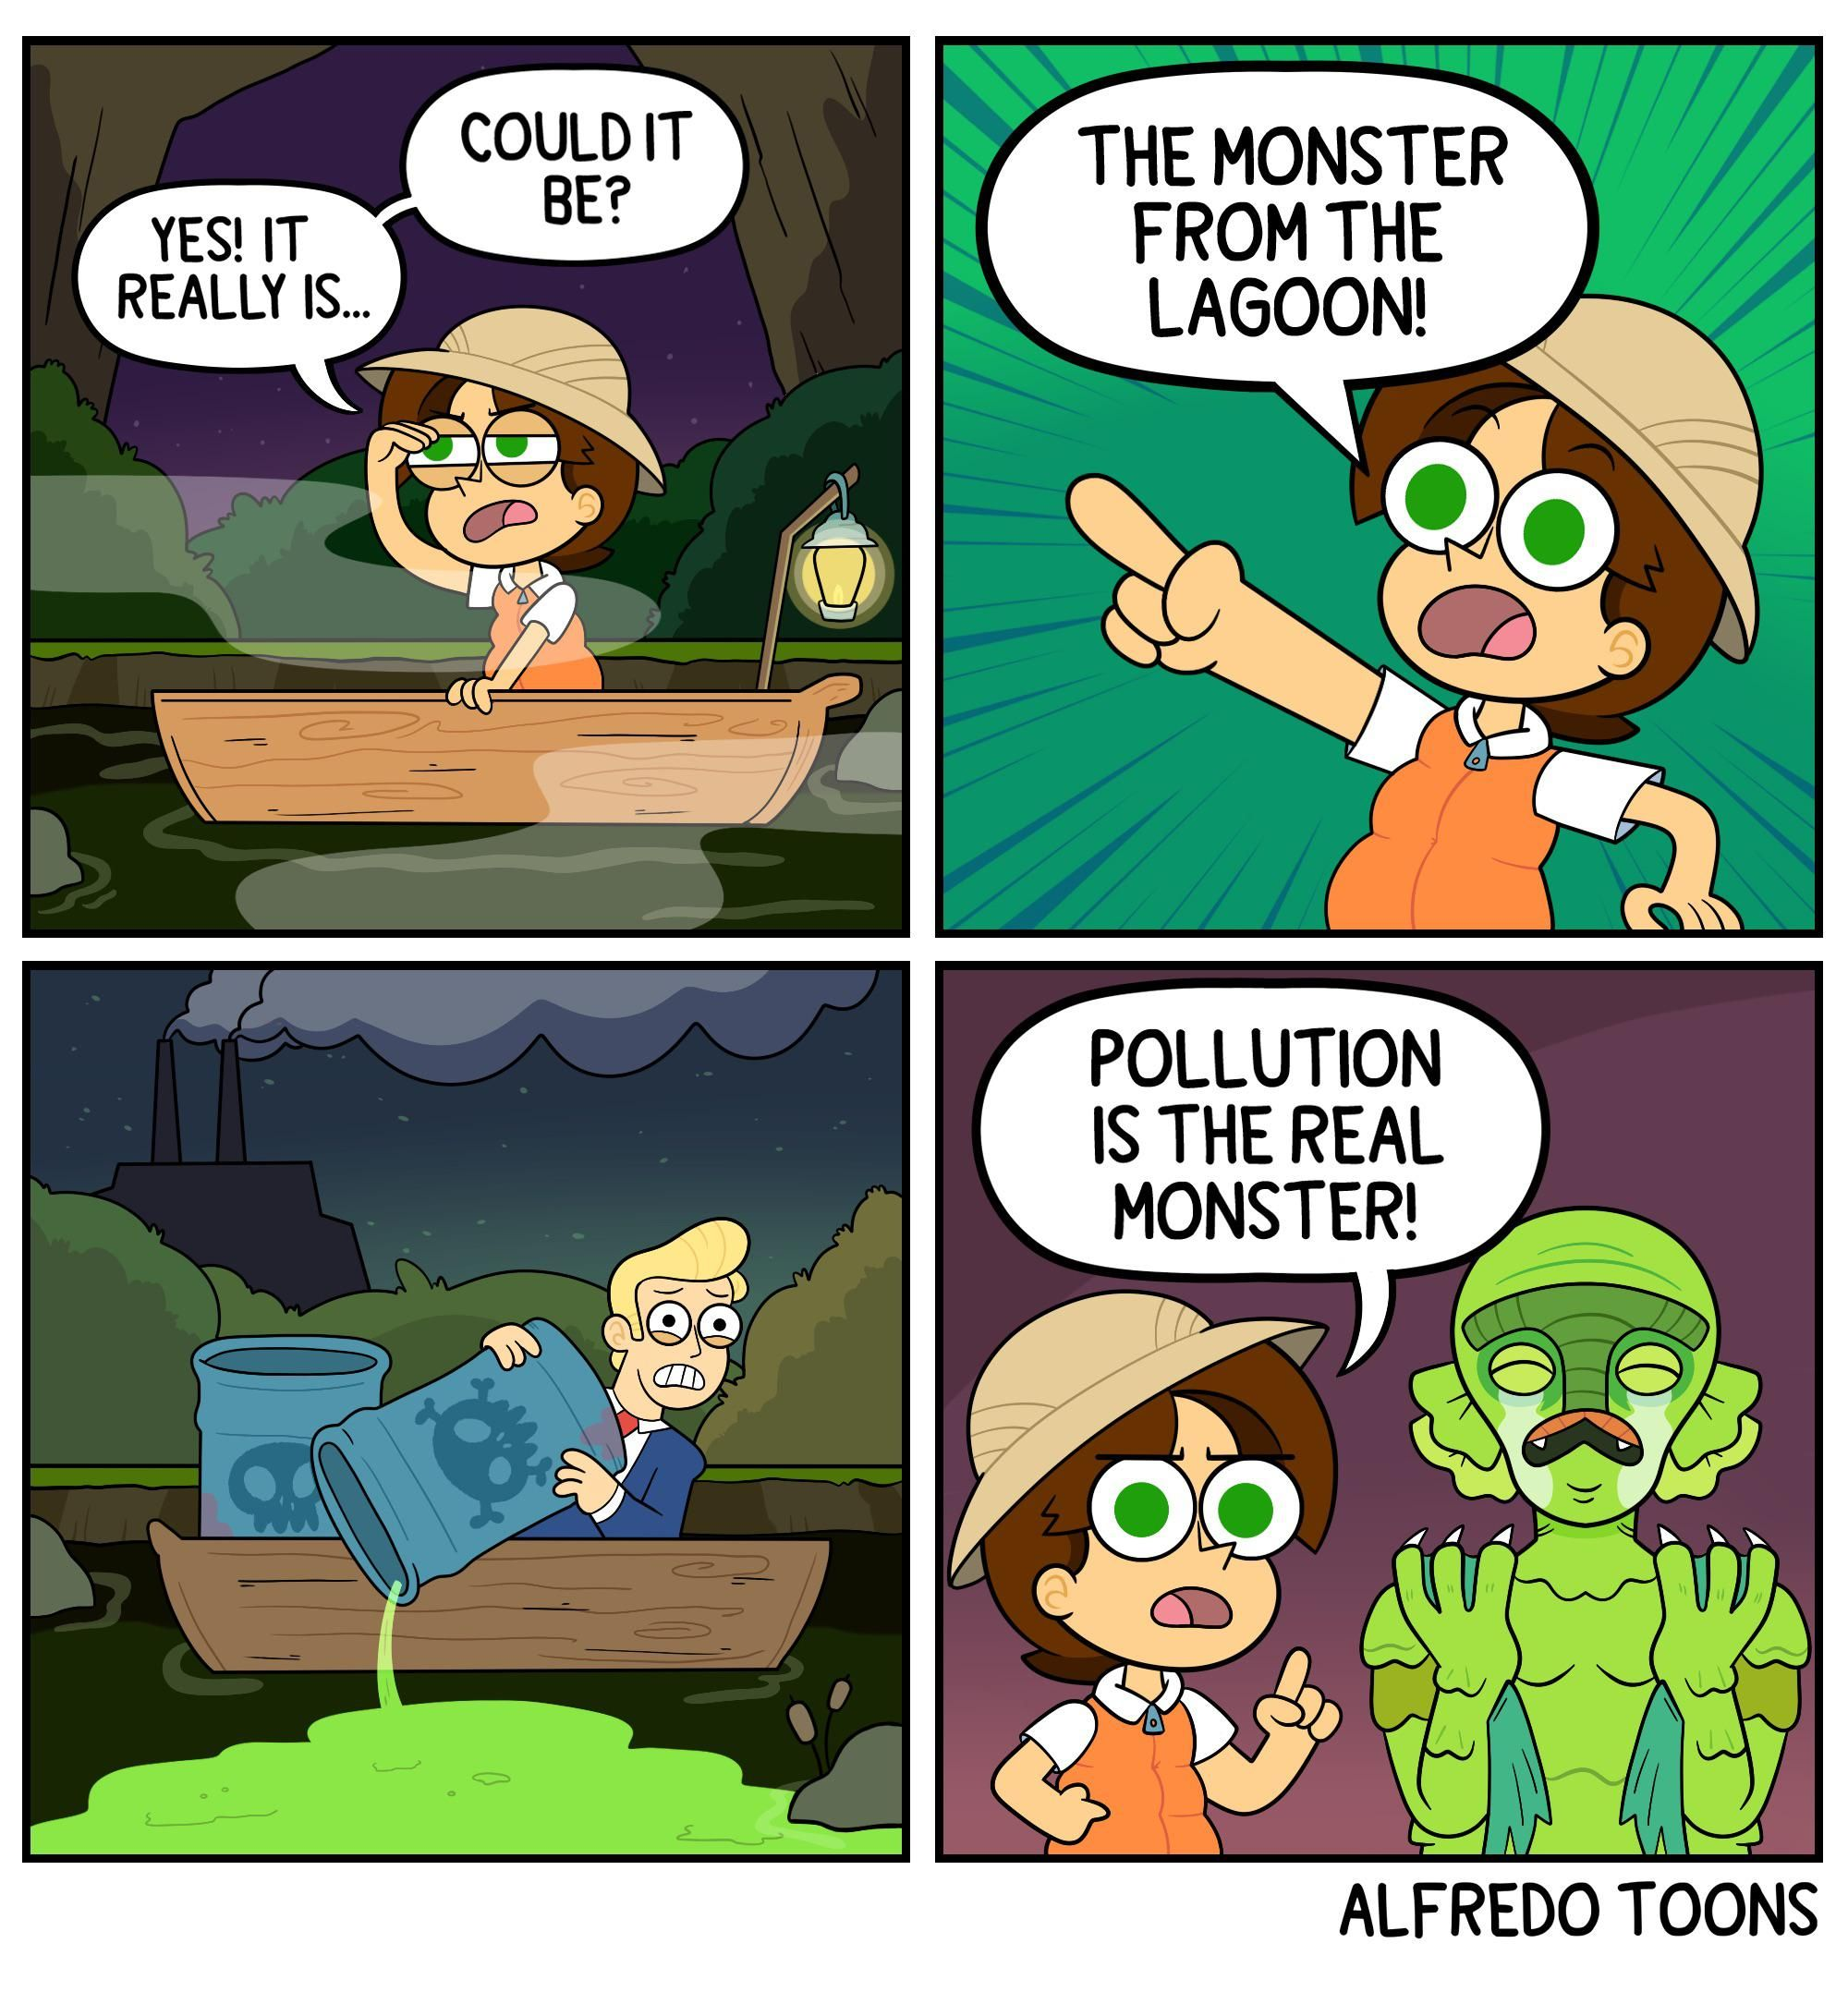 POLLUTION IS THE REAL MONSTER!